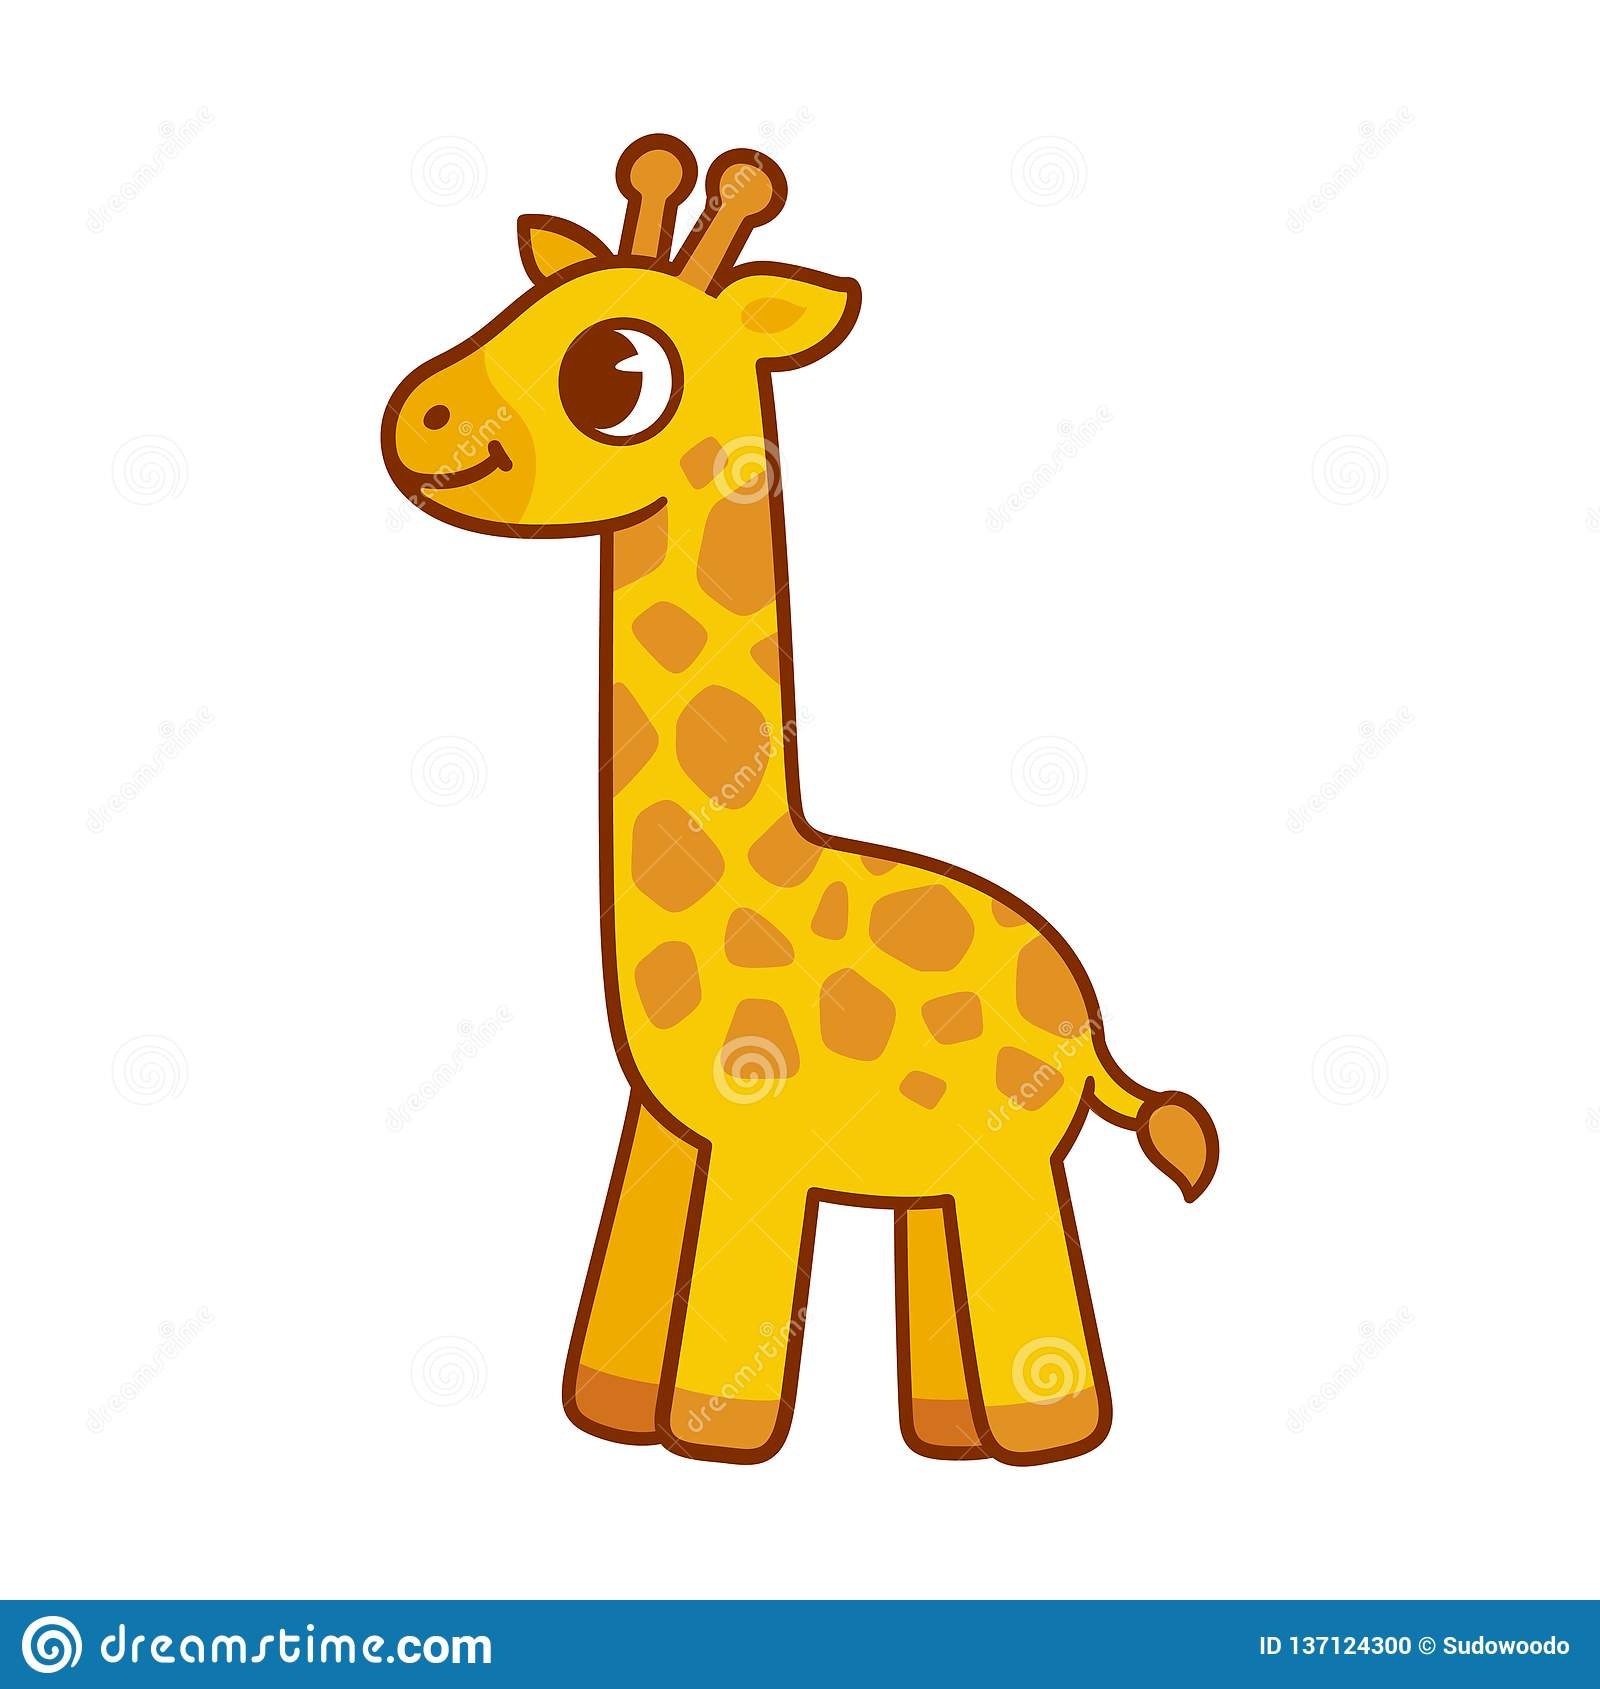 Cute cartoon giraffe stock vector. Illustration of tall ...